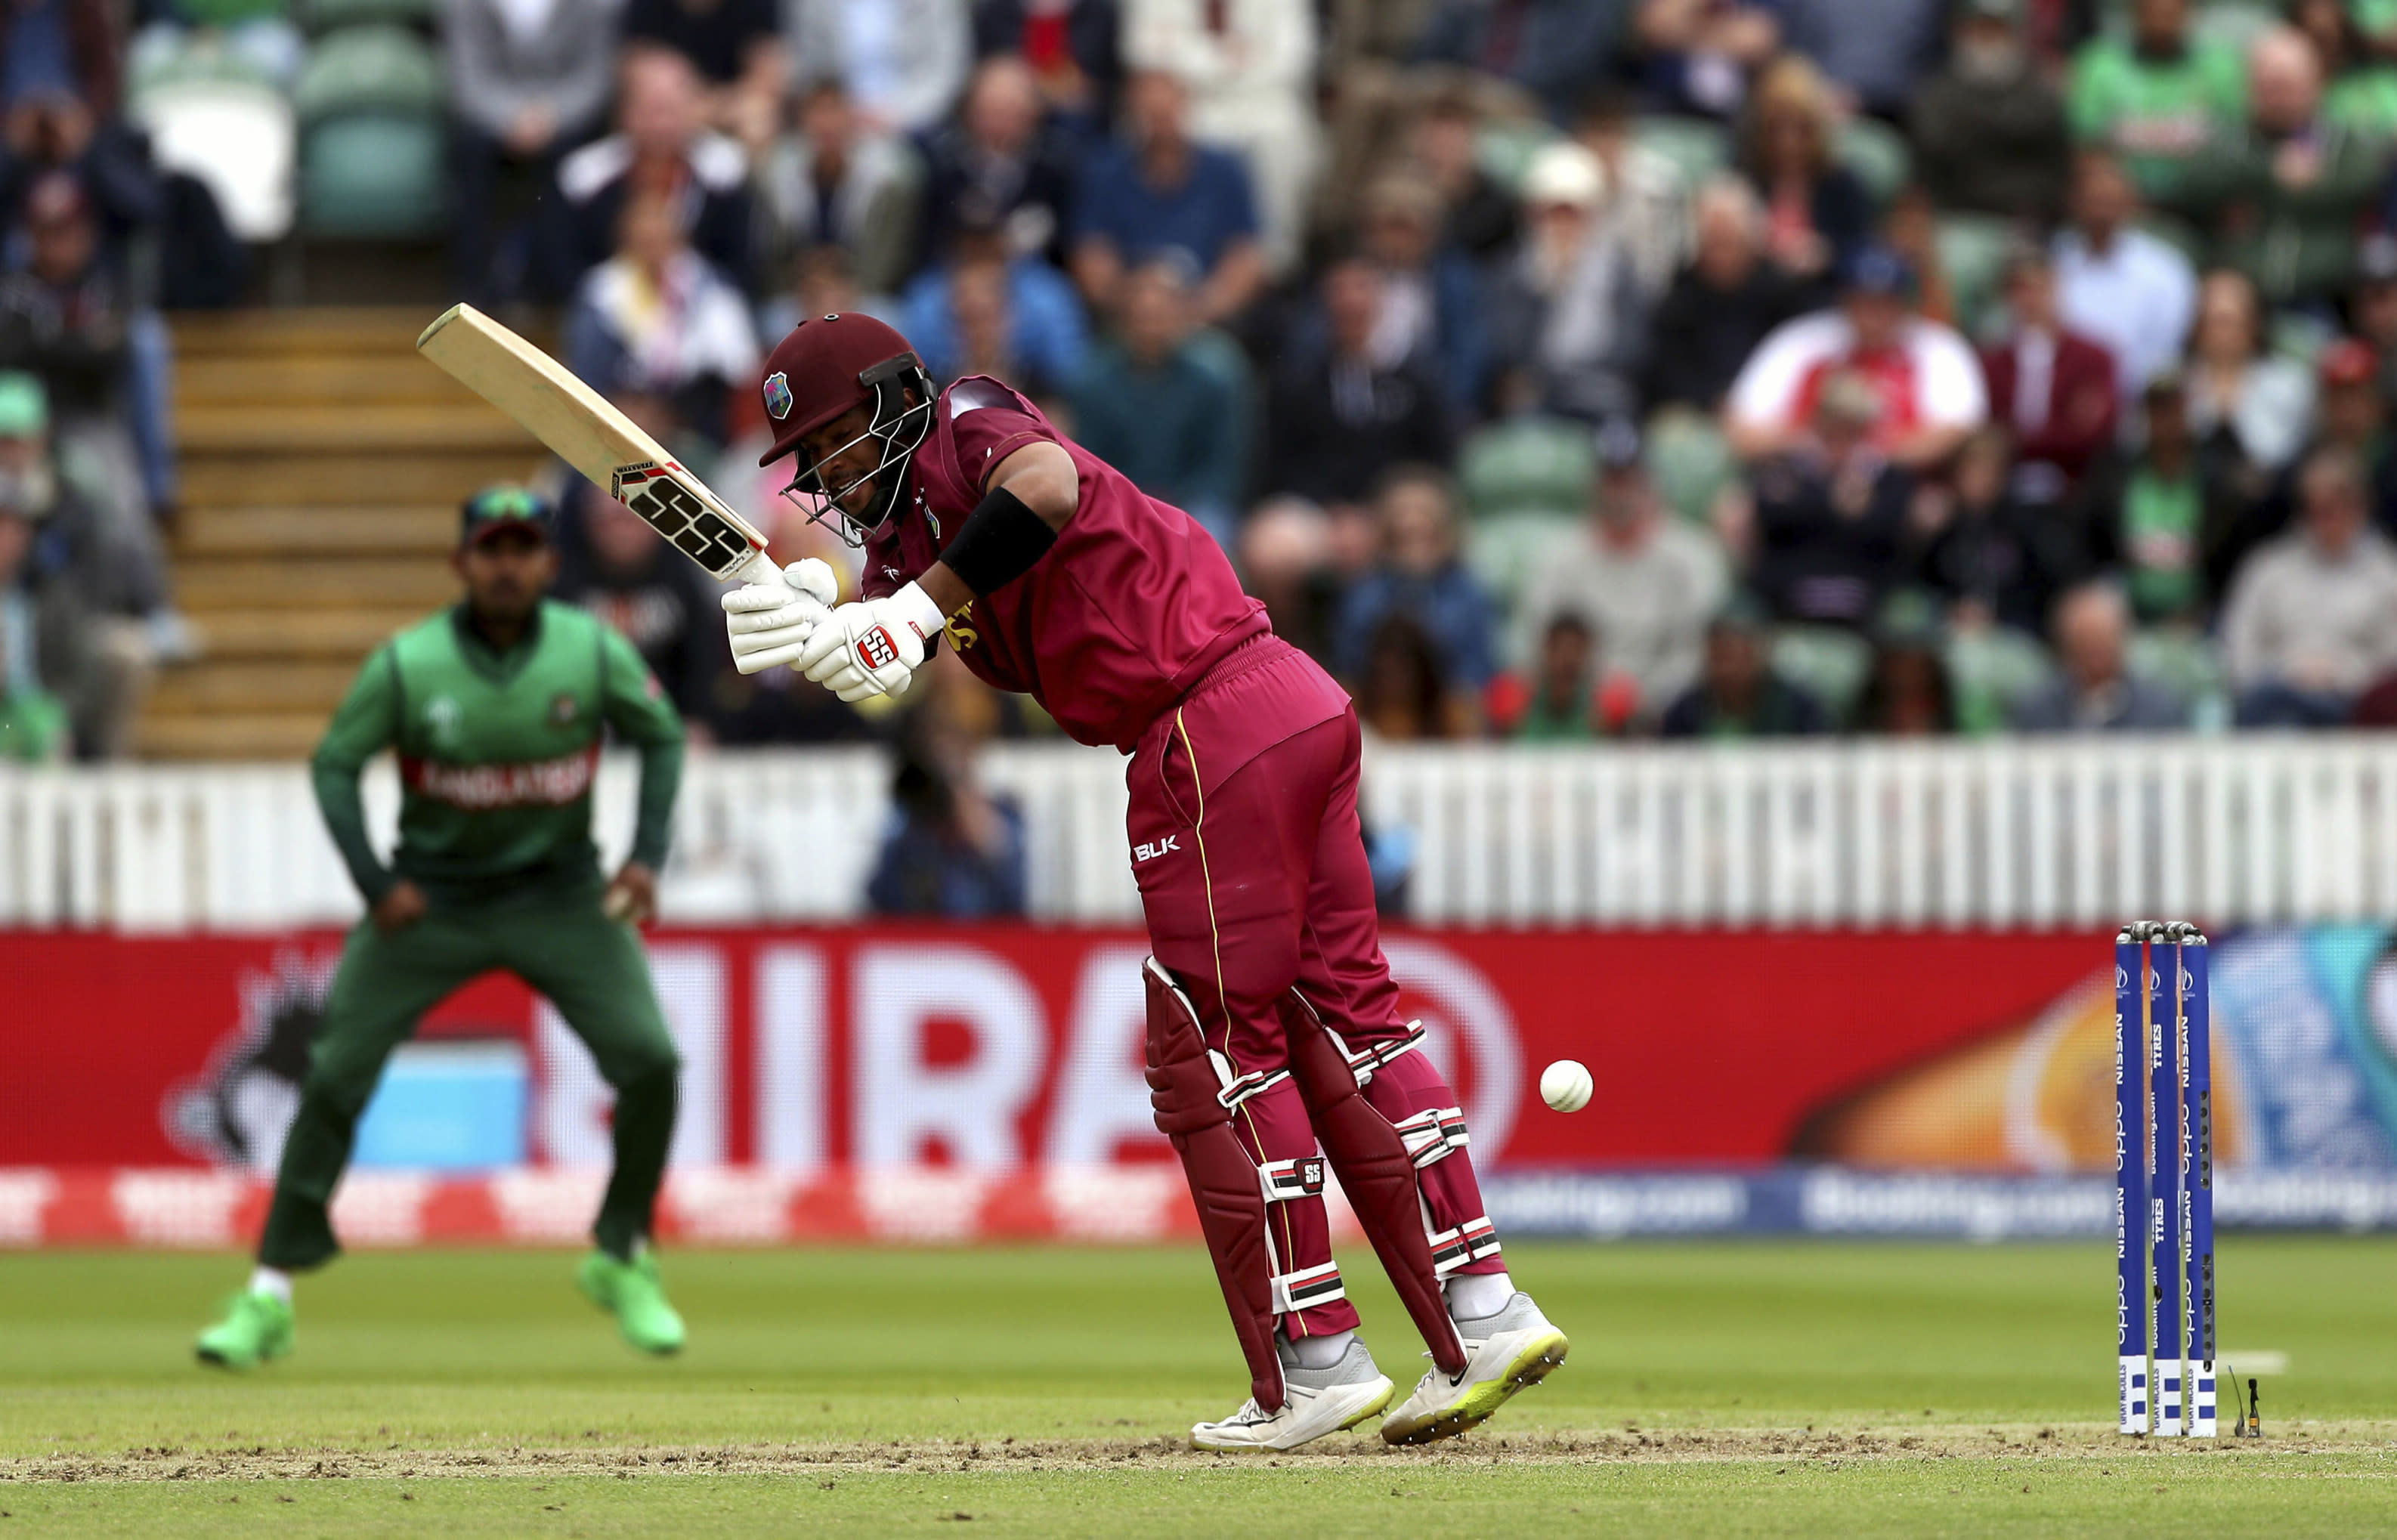 The Latest: Bangladesh chase down West Indies in big win